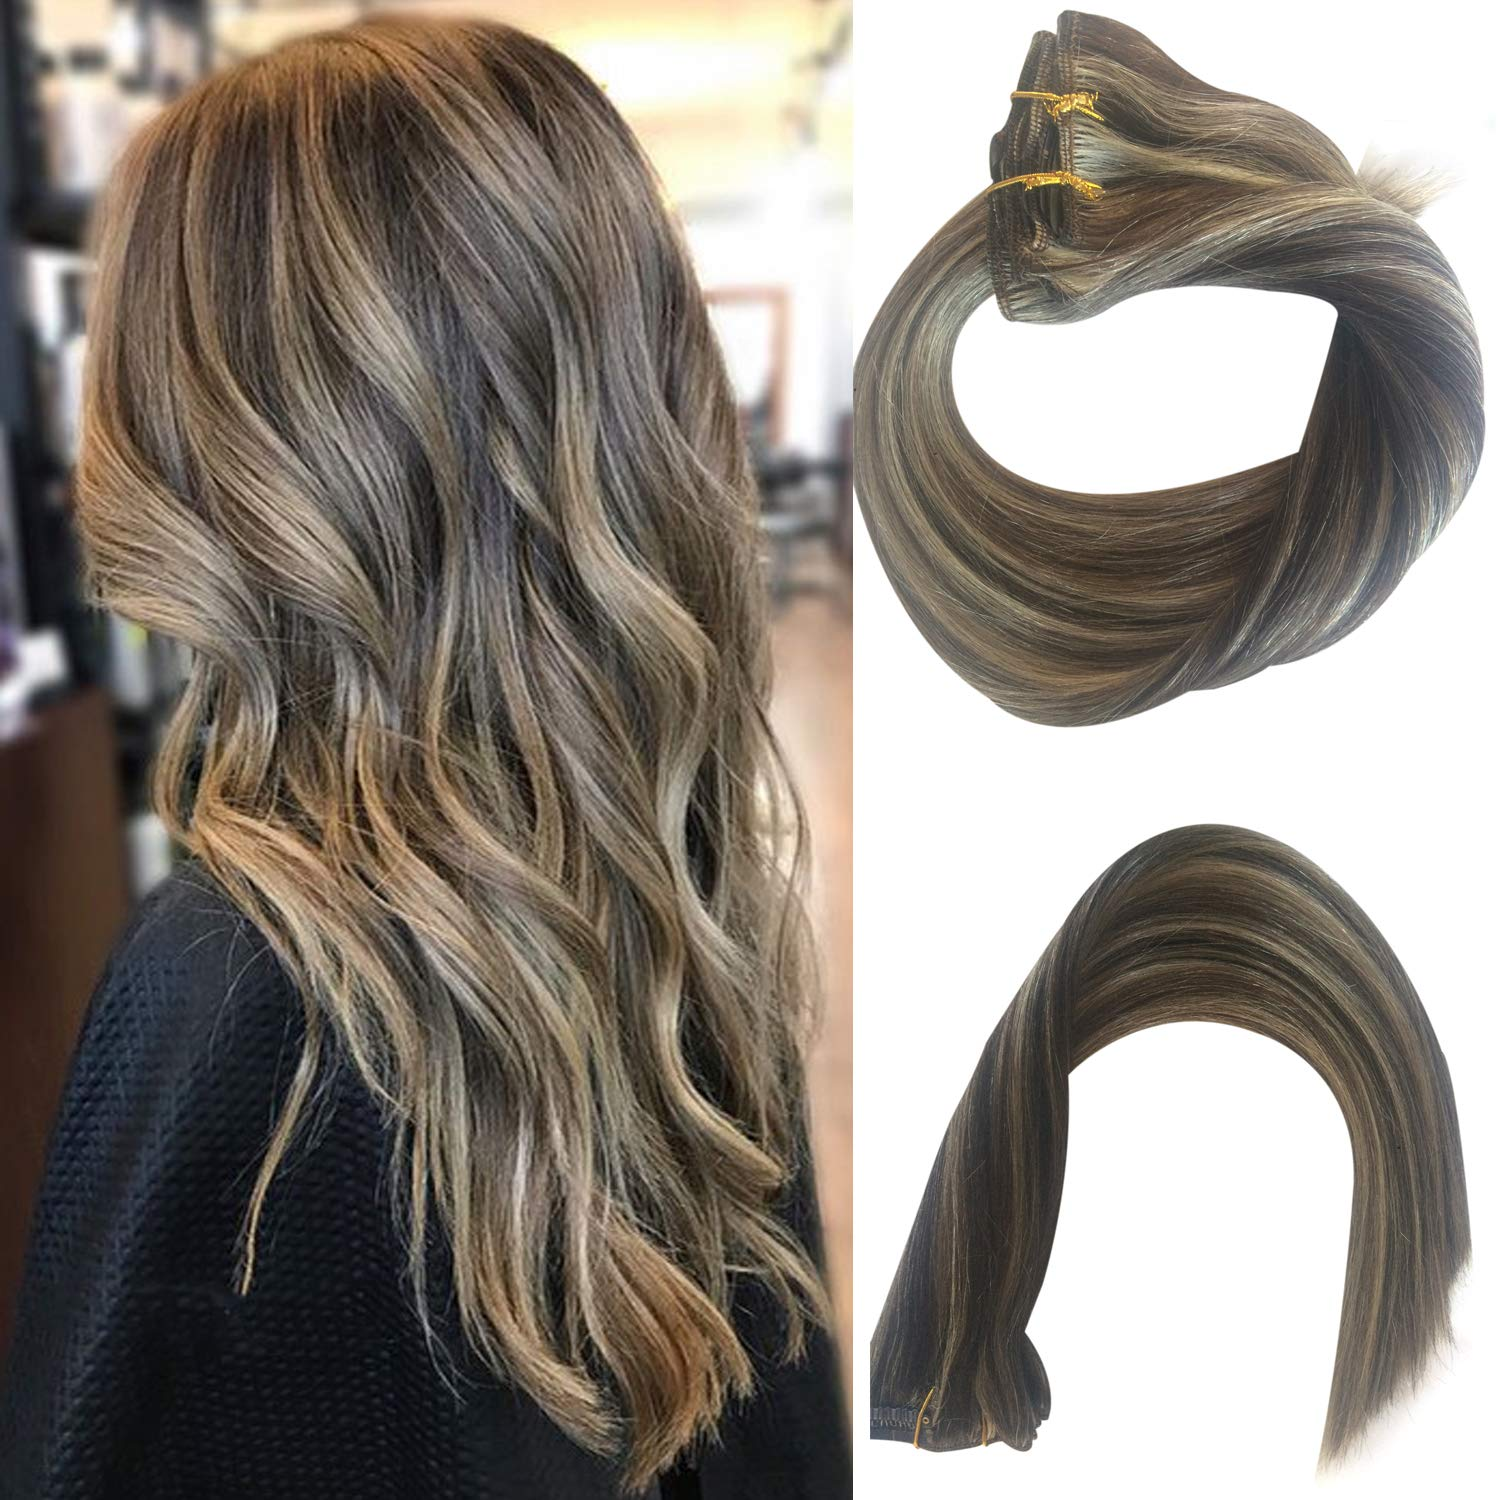 """18"""" Clip in Hair Extensions Dark Brown to Bleach Blonde Highlights for Beauty - Short Silky Straight 7pcs Real Hair Extensions Clip In Human Hair(18inch #2/613)"""